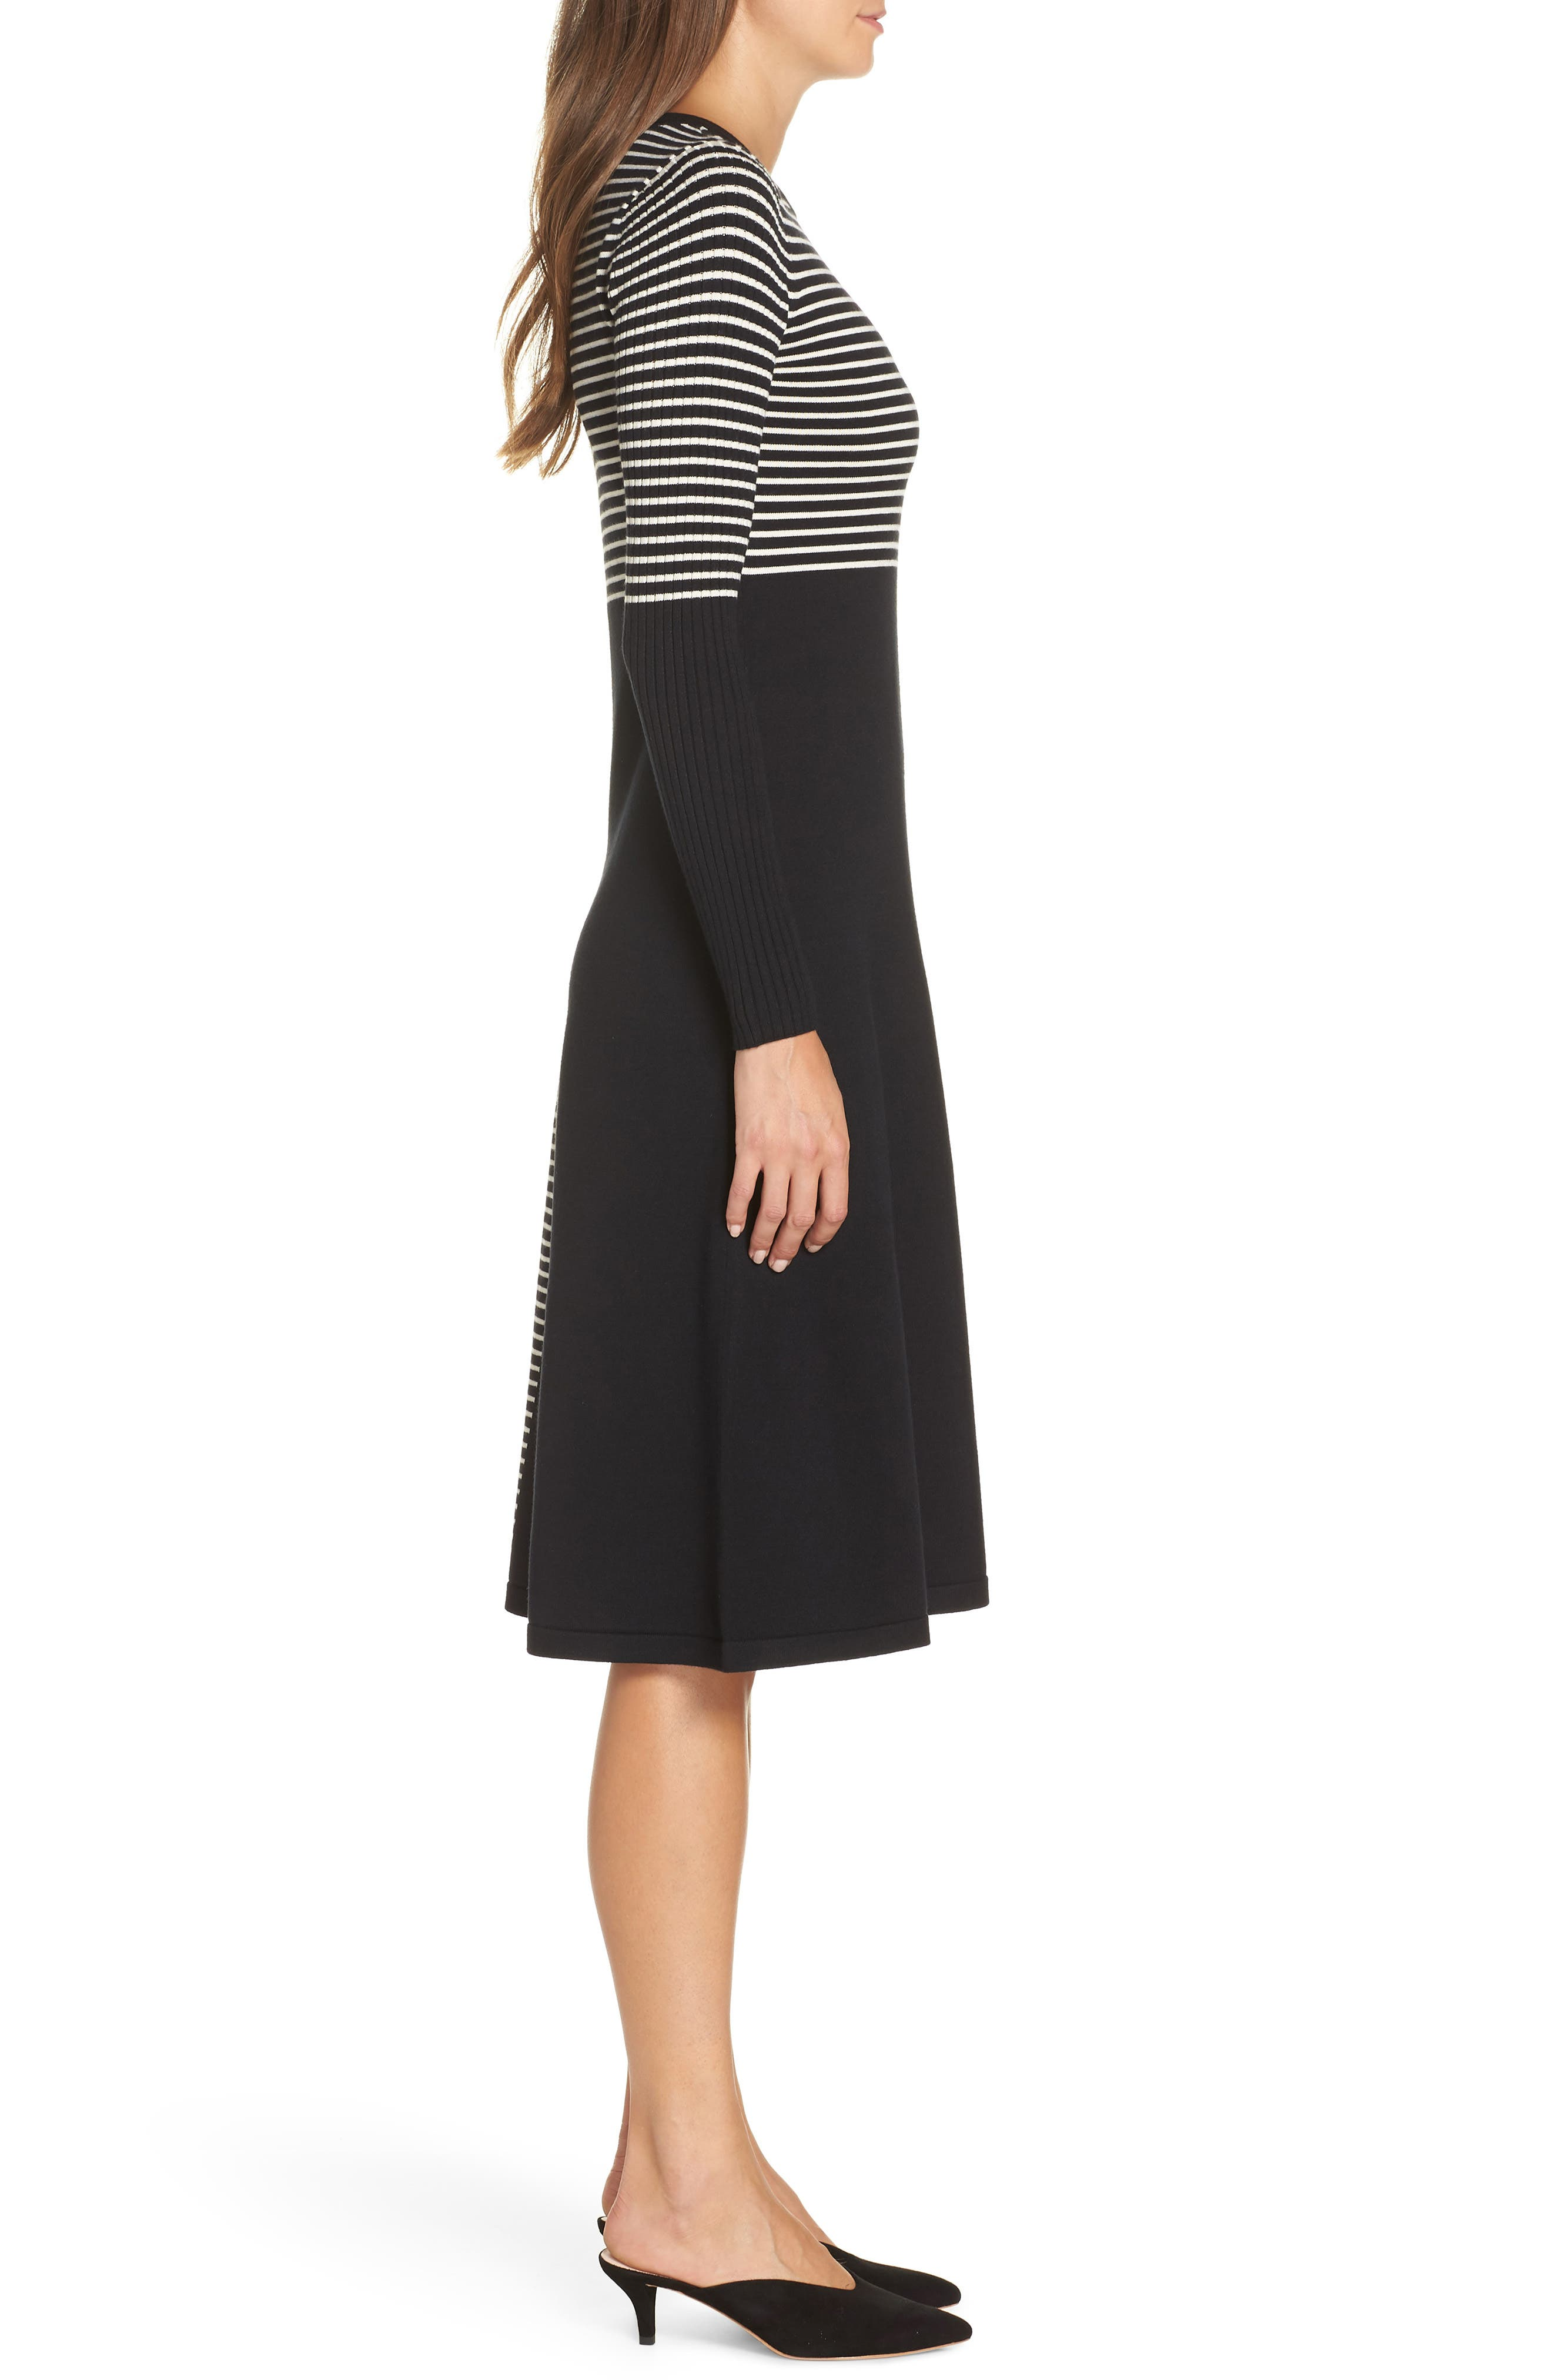 ELIZA J, Placed Stripe Sweater Dress, Alternate thumbnail 4, color, 900